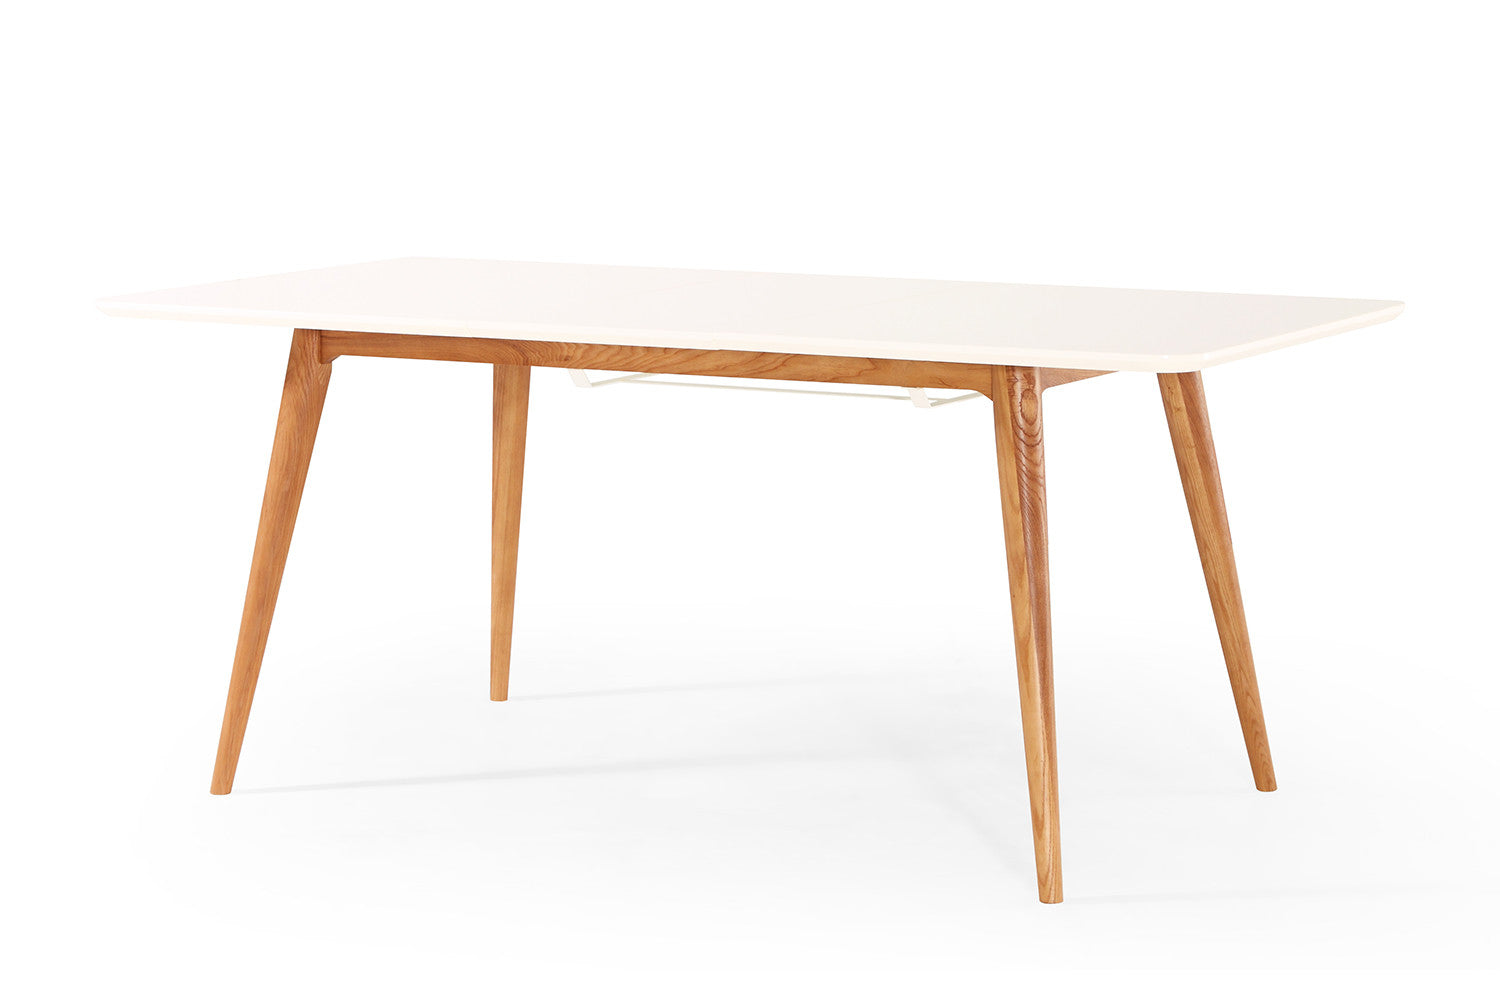 Table salle a manger scandinave extensible for Table a manger extensible scandinave